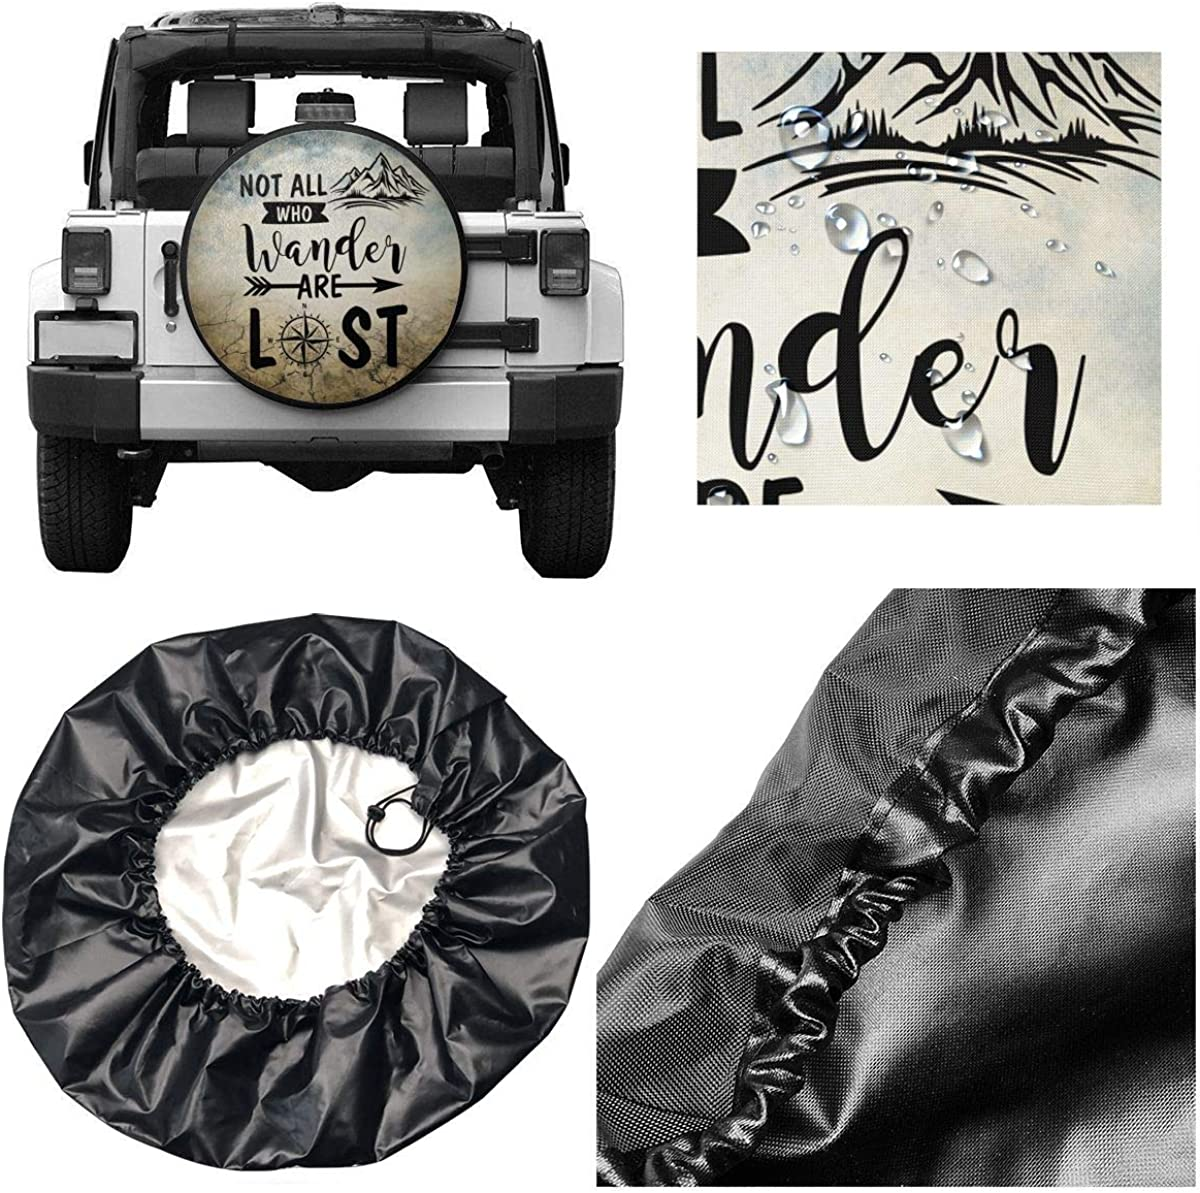 YZ-MAMU Not All Those Who Wander are Lost Spare Tire Cover Waterproof for Jeep Trailer RV SUV Truck Camper Travel Trailer Accessories